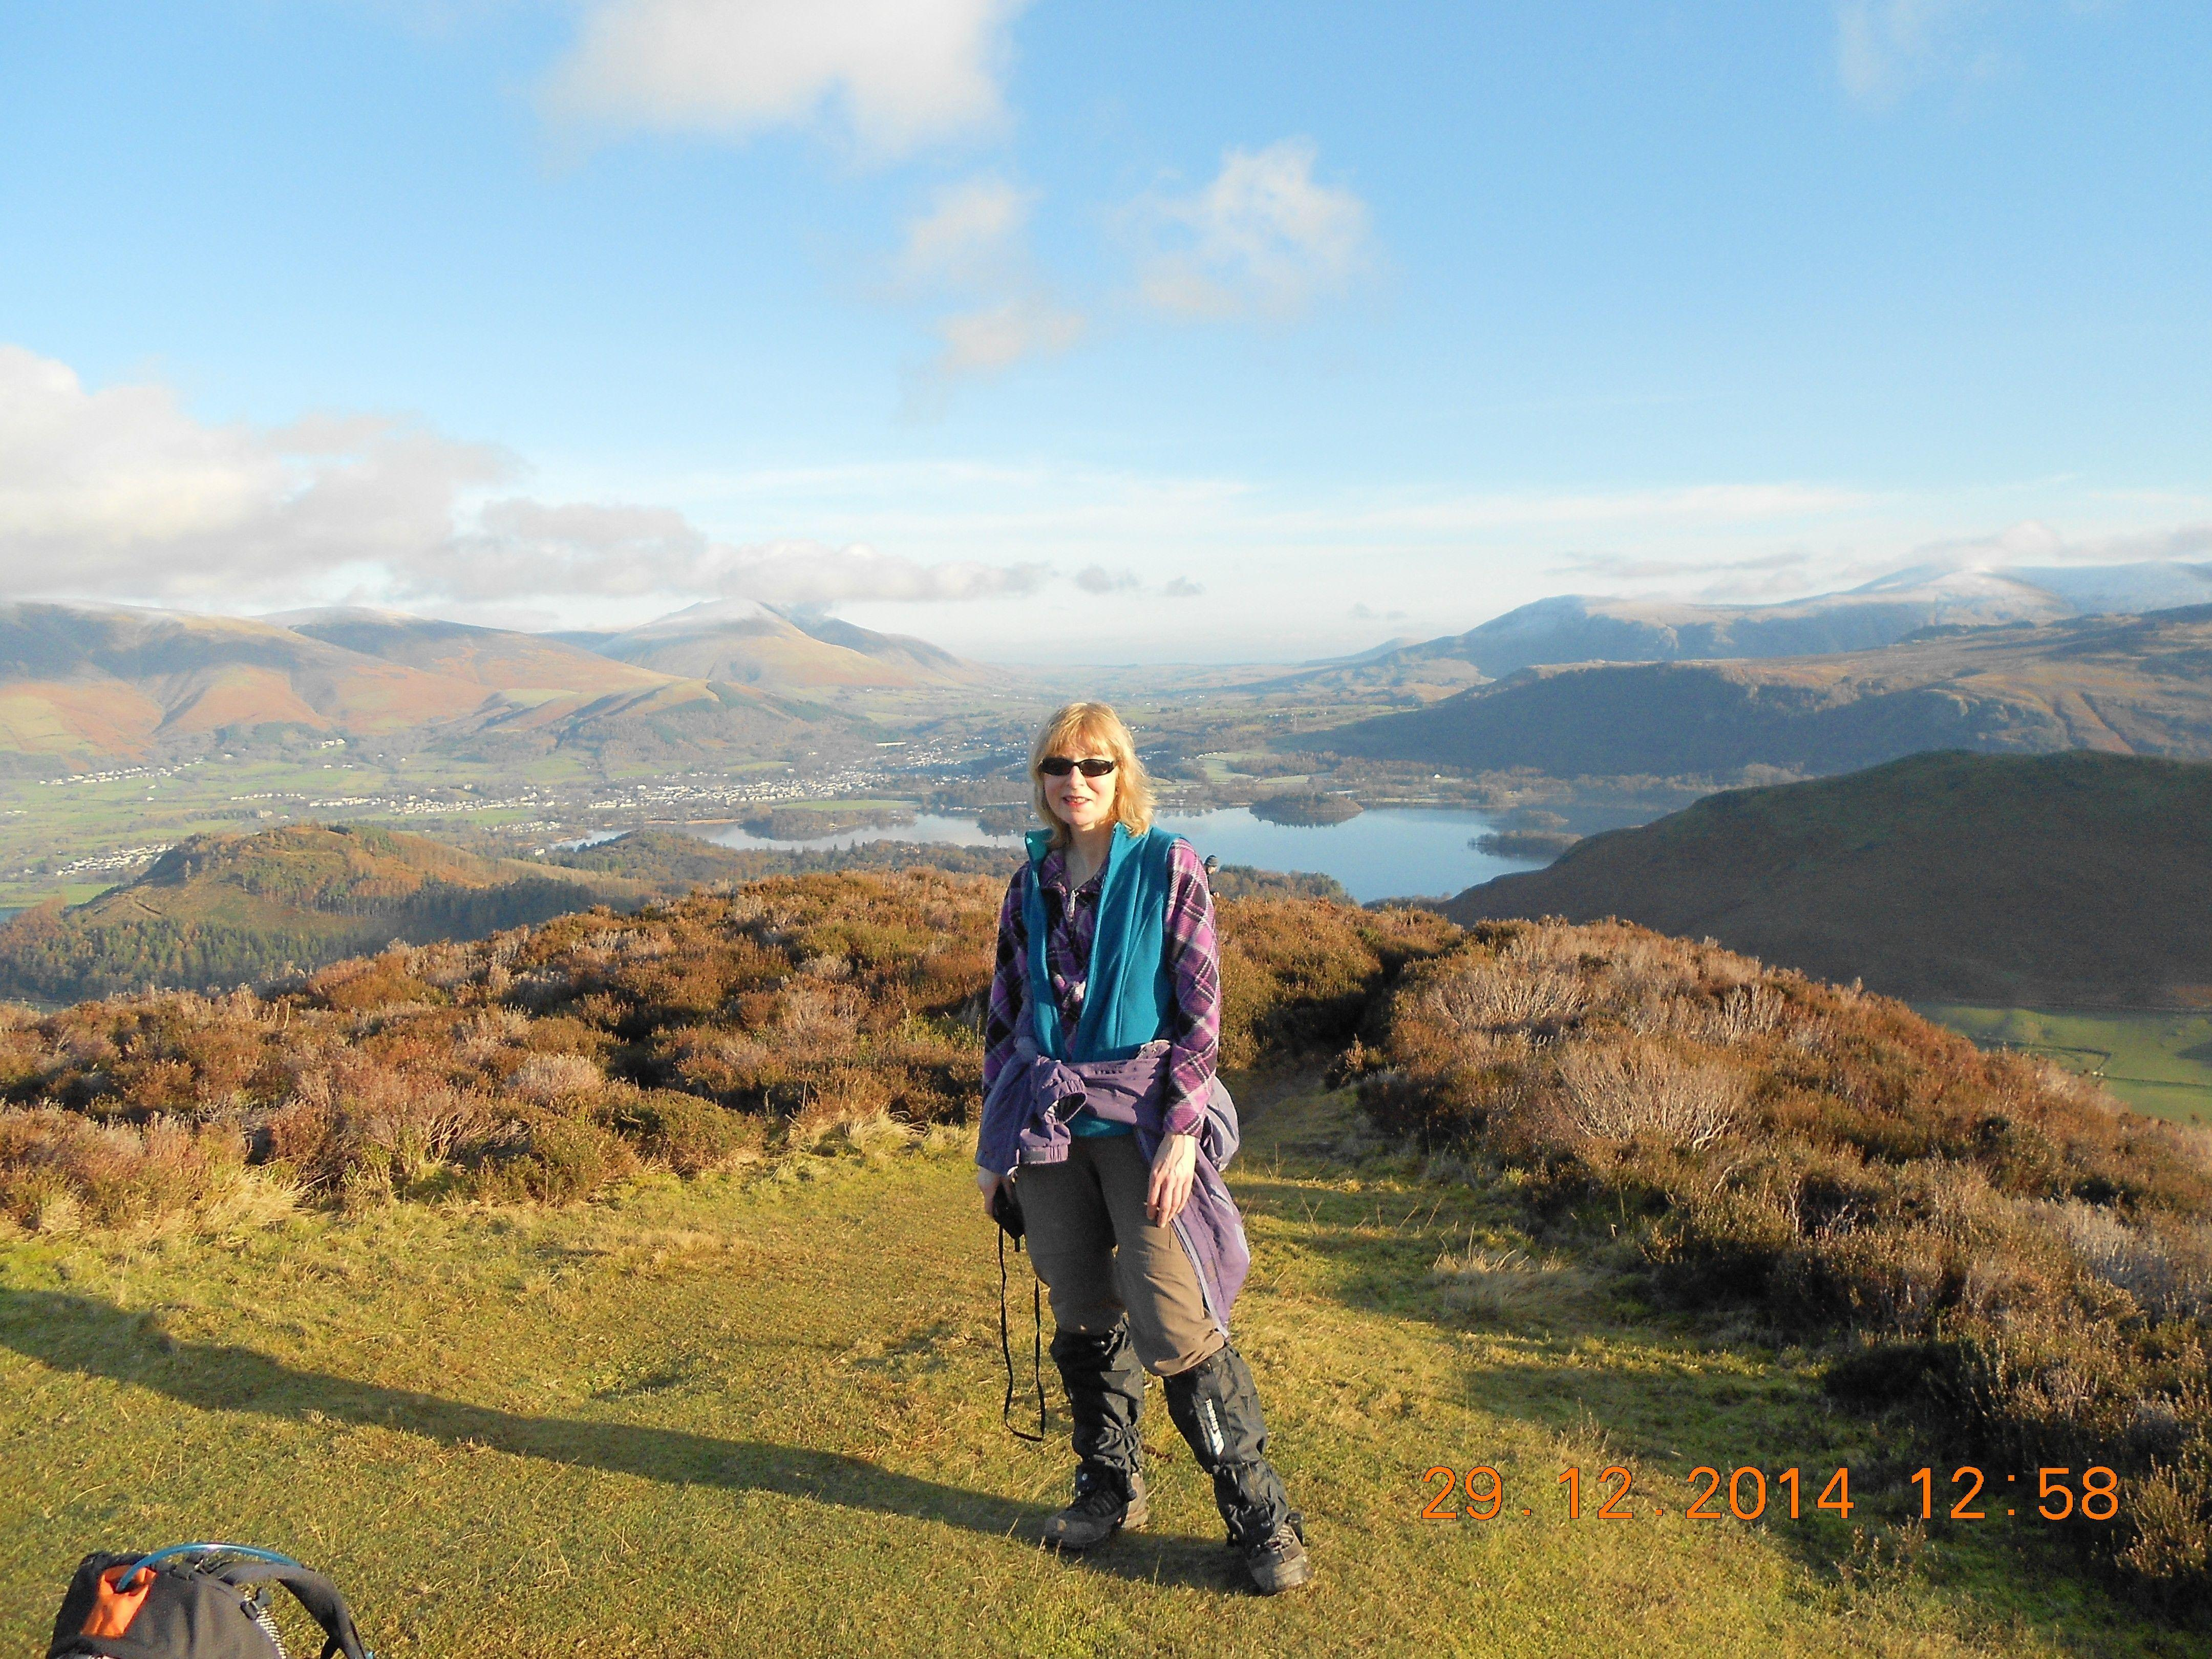 Joanne - Guided hillwalking and backpacking in Scotland